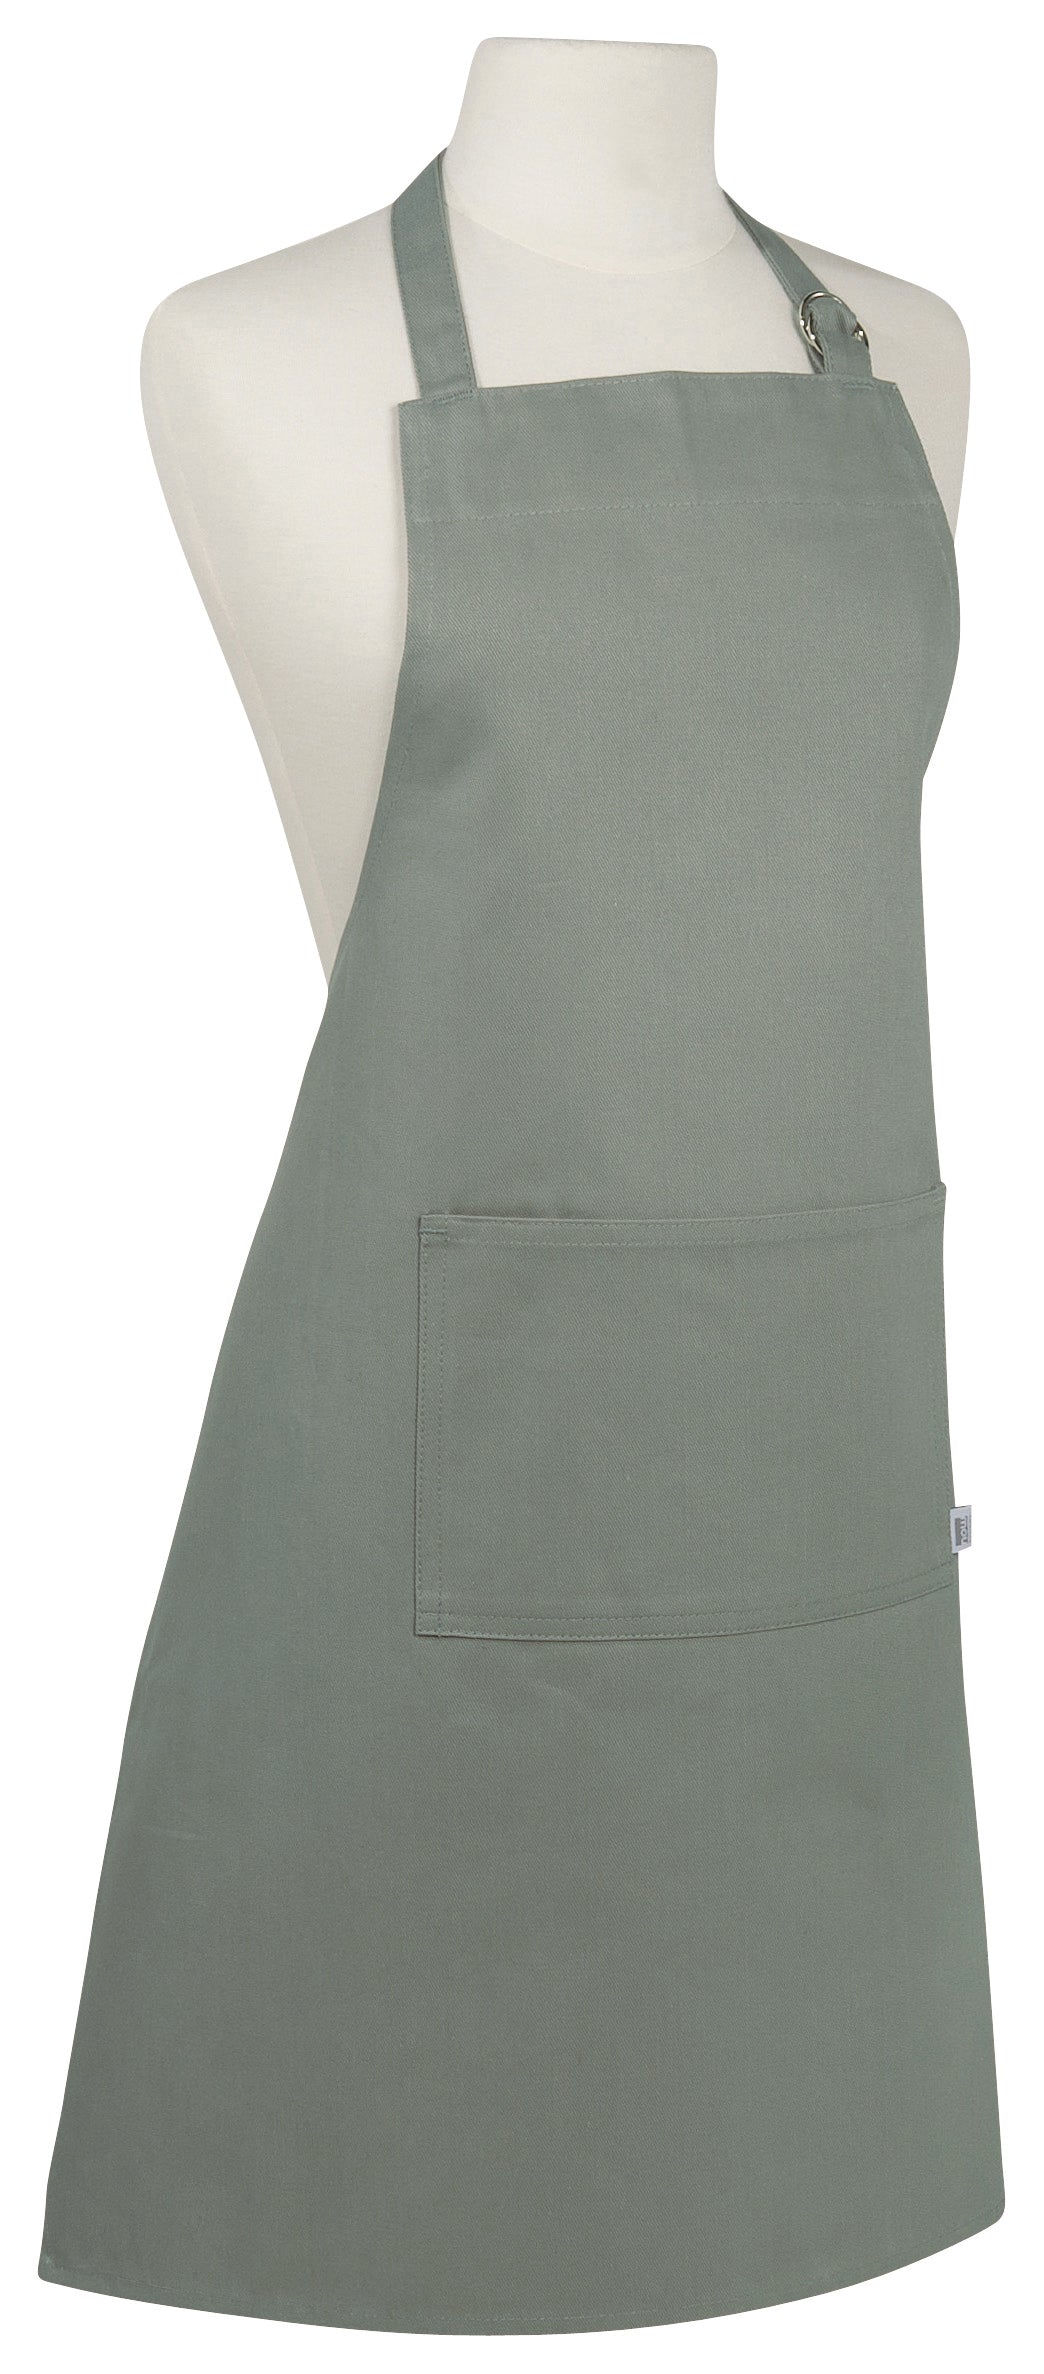 Monogrammed London Grey Chef Apron